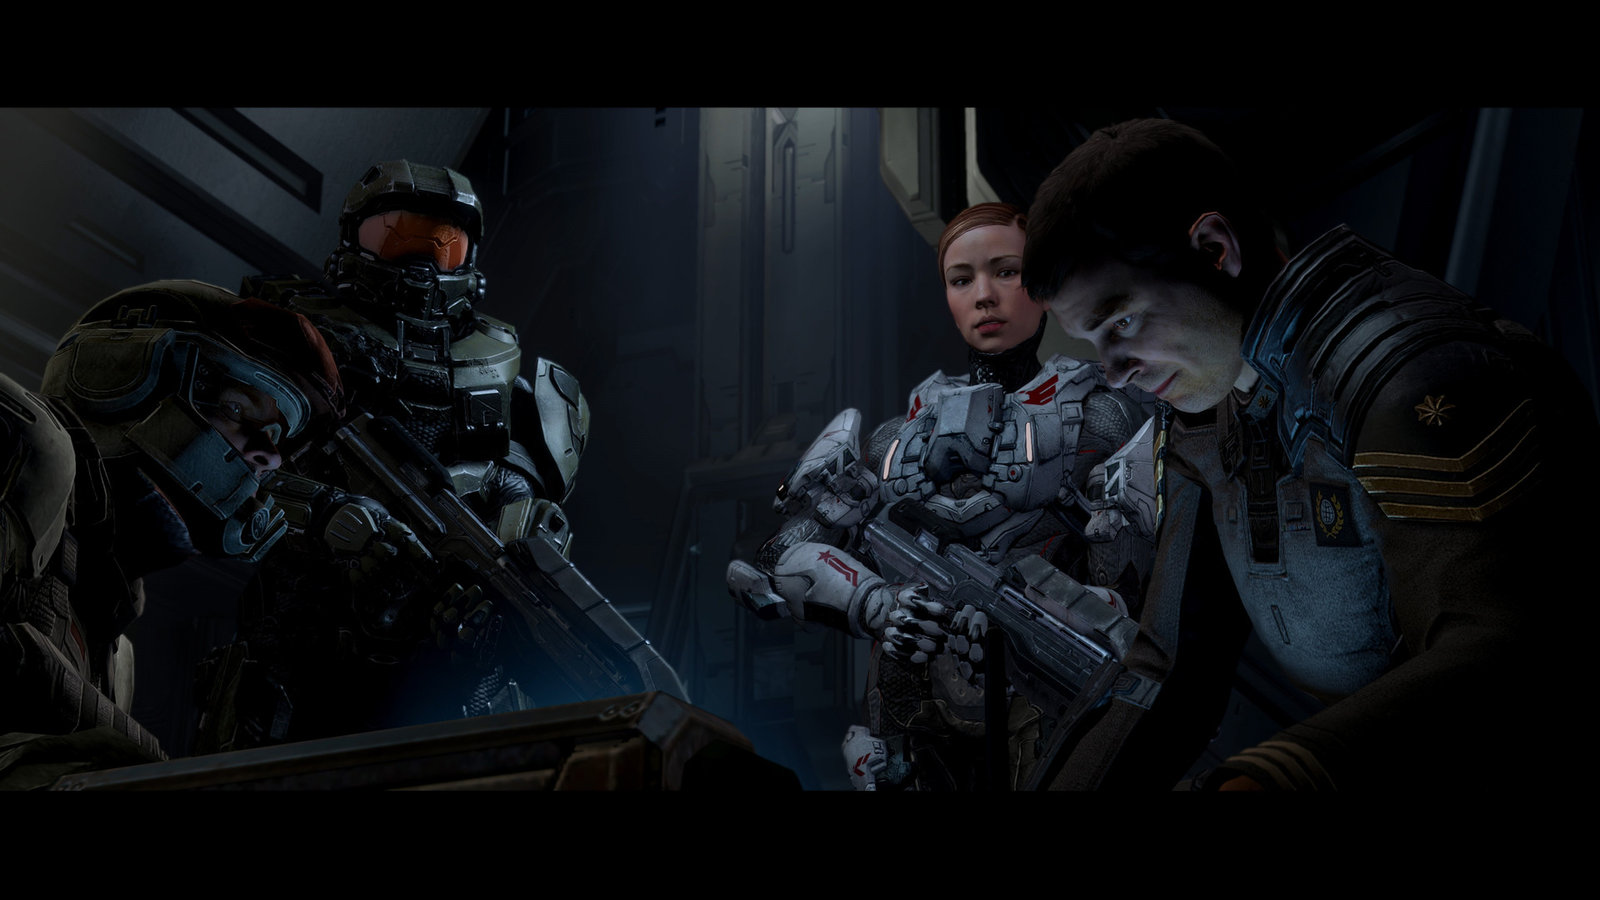 Halo: The Master Chief Collection - Halo 4 image 1